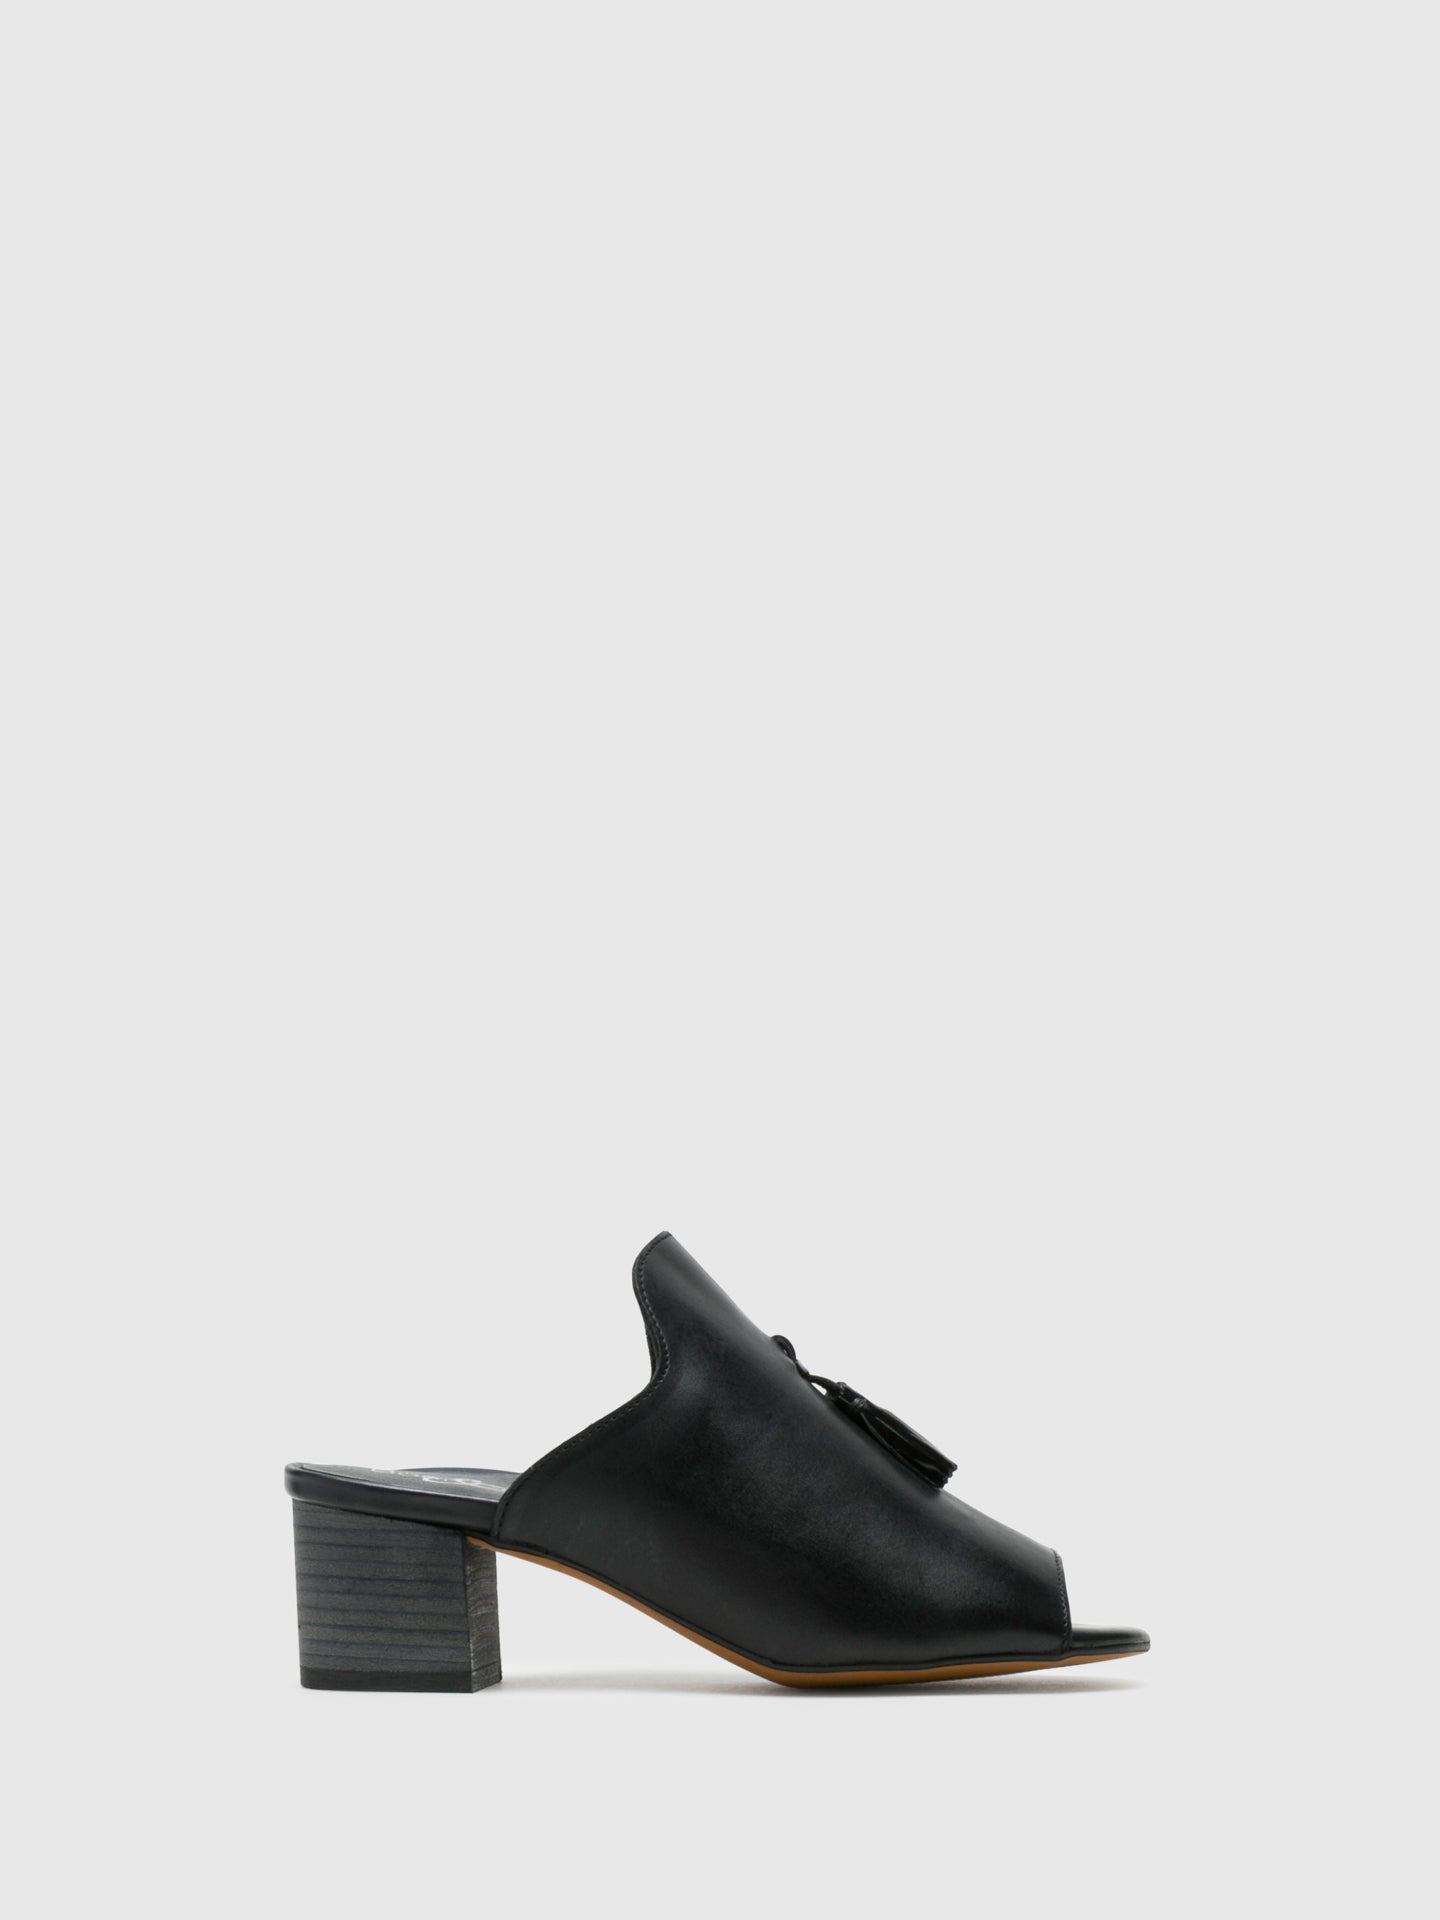 Bos&Co Black Appliqués Mules